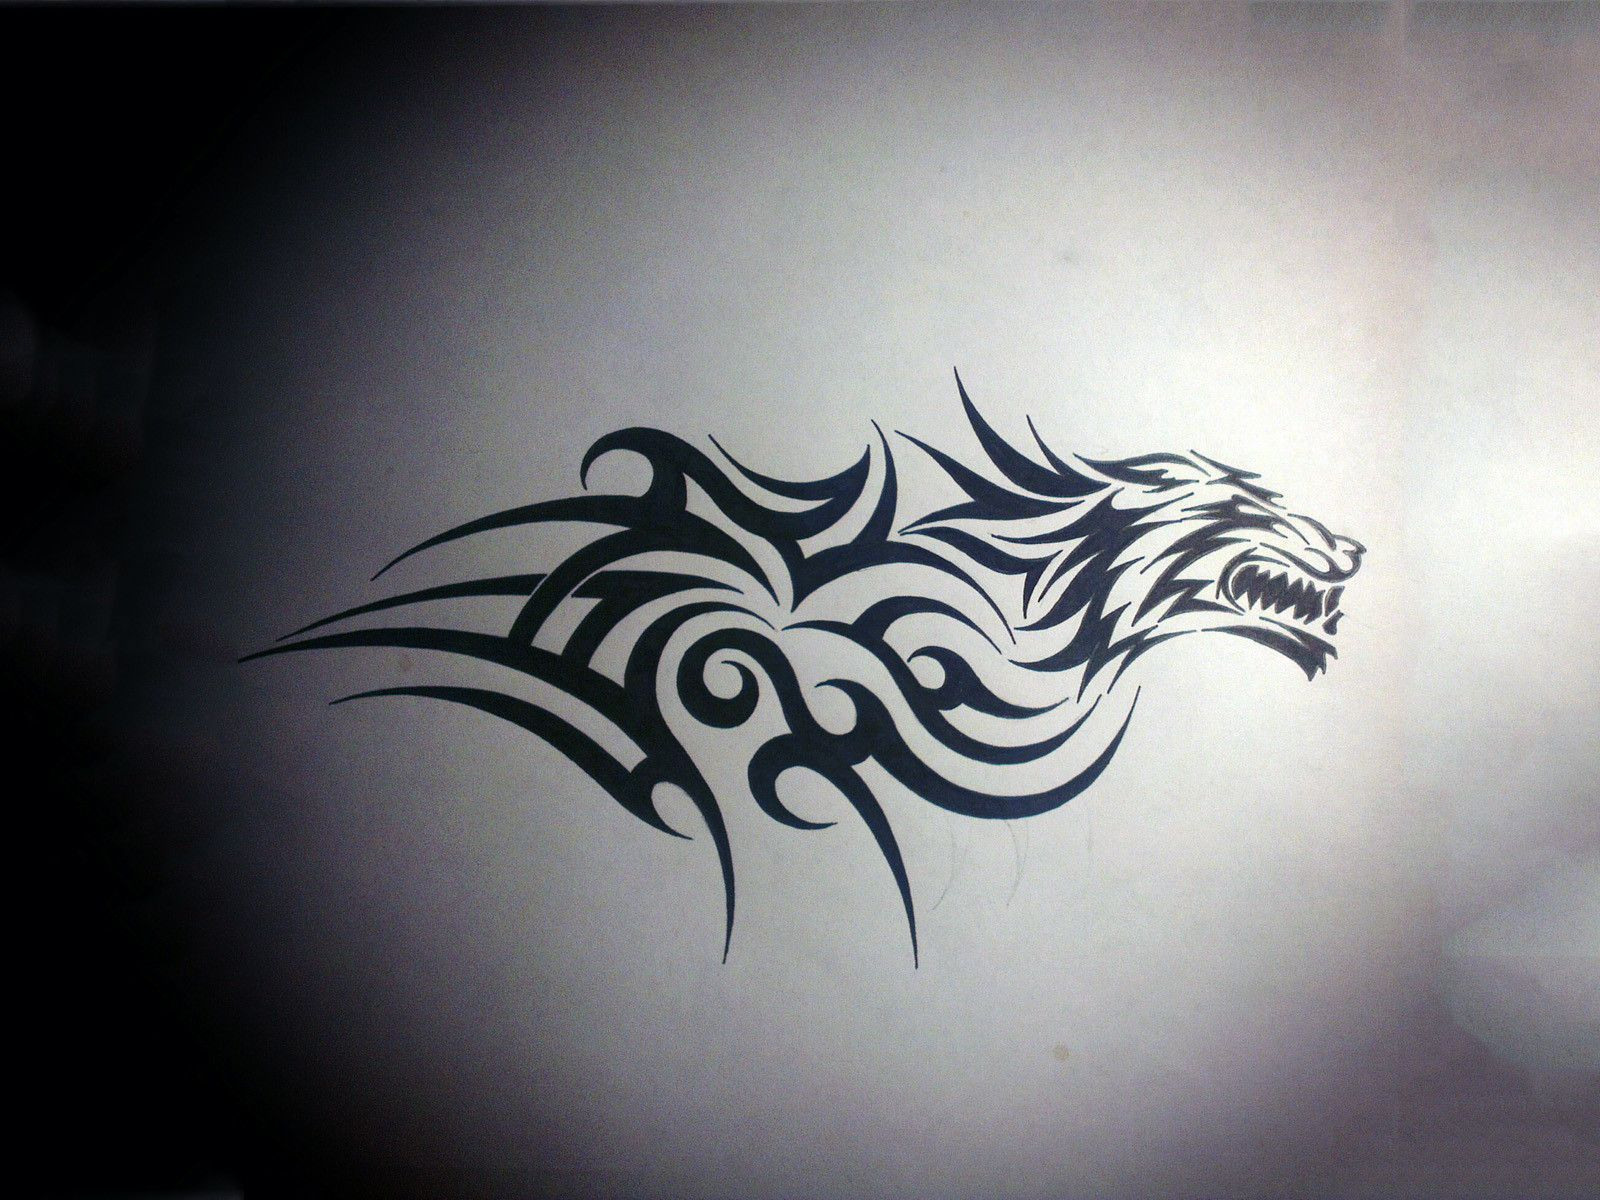 Tiger Tribal Tattoo Design Wallpaper Tatuajes Tribales Tatoo Tatuajes